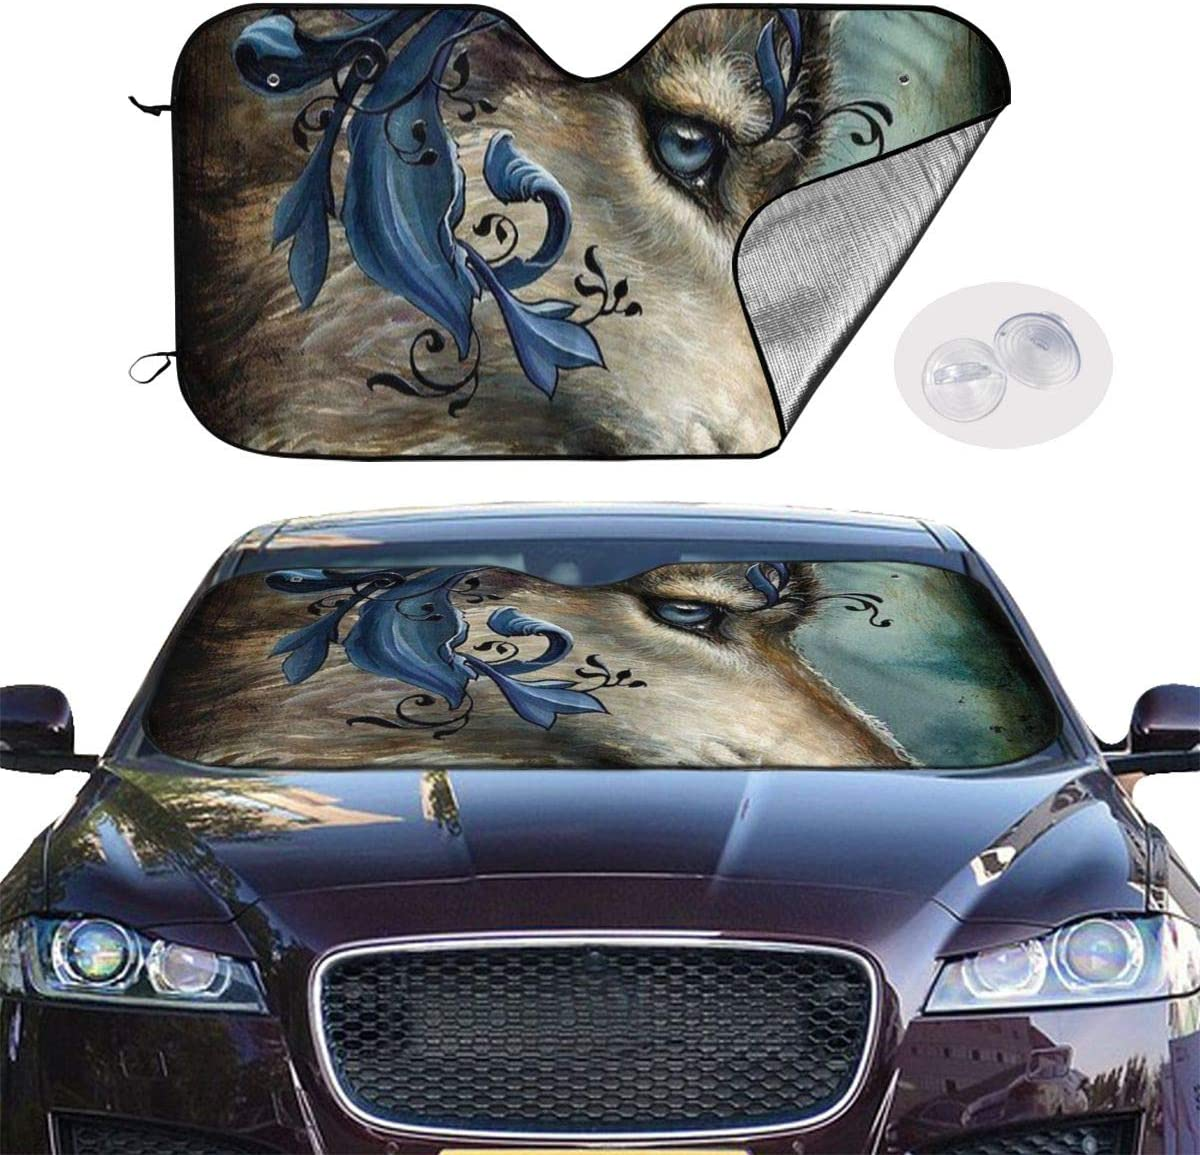 TPSXXY-WS Dragonfly Dream Dreamcatcher Windshield Sunshade for Car SUV Truck Foldable UV Ray Reflector Front Window Sun Shade Visor Shield Cover